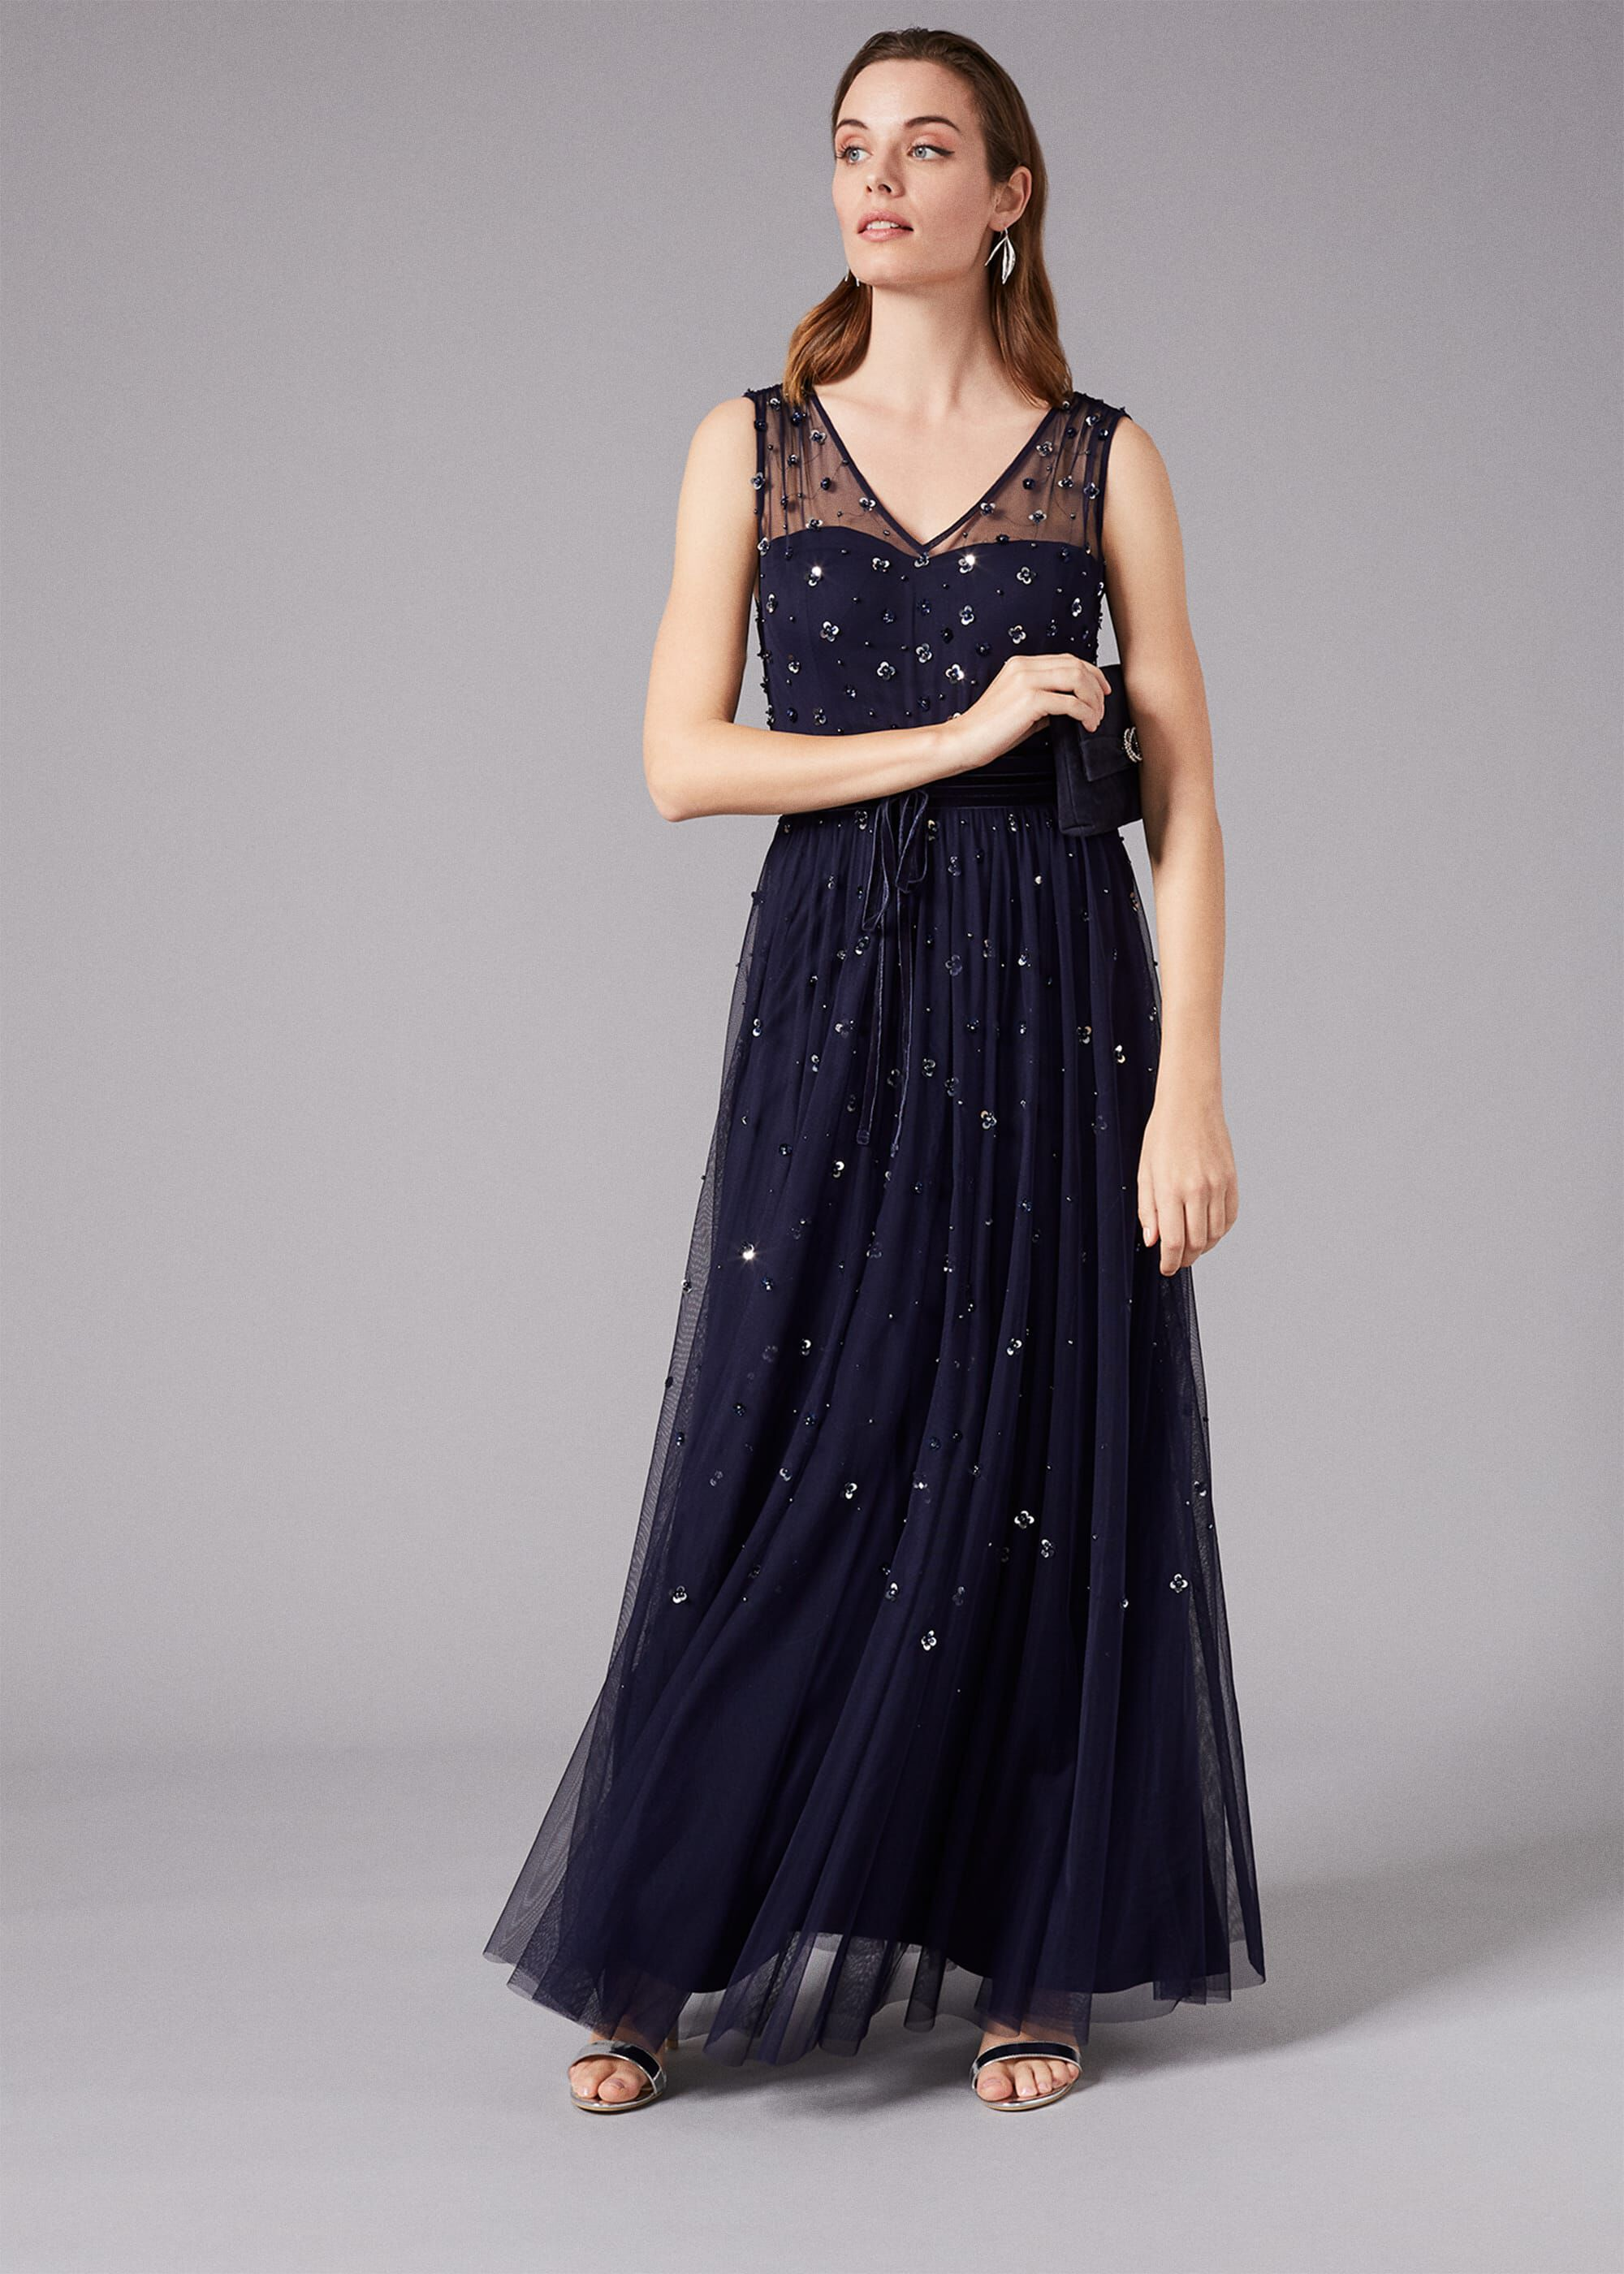 Phase Eight Marcia Sequin Tulle Dress, Blue, Maxi, Occasion Dress